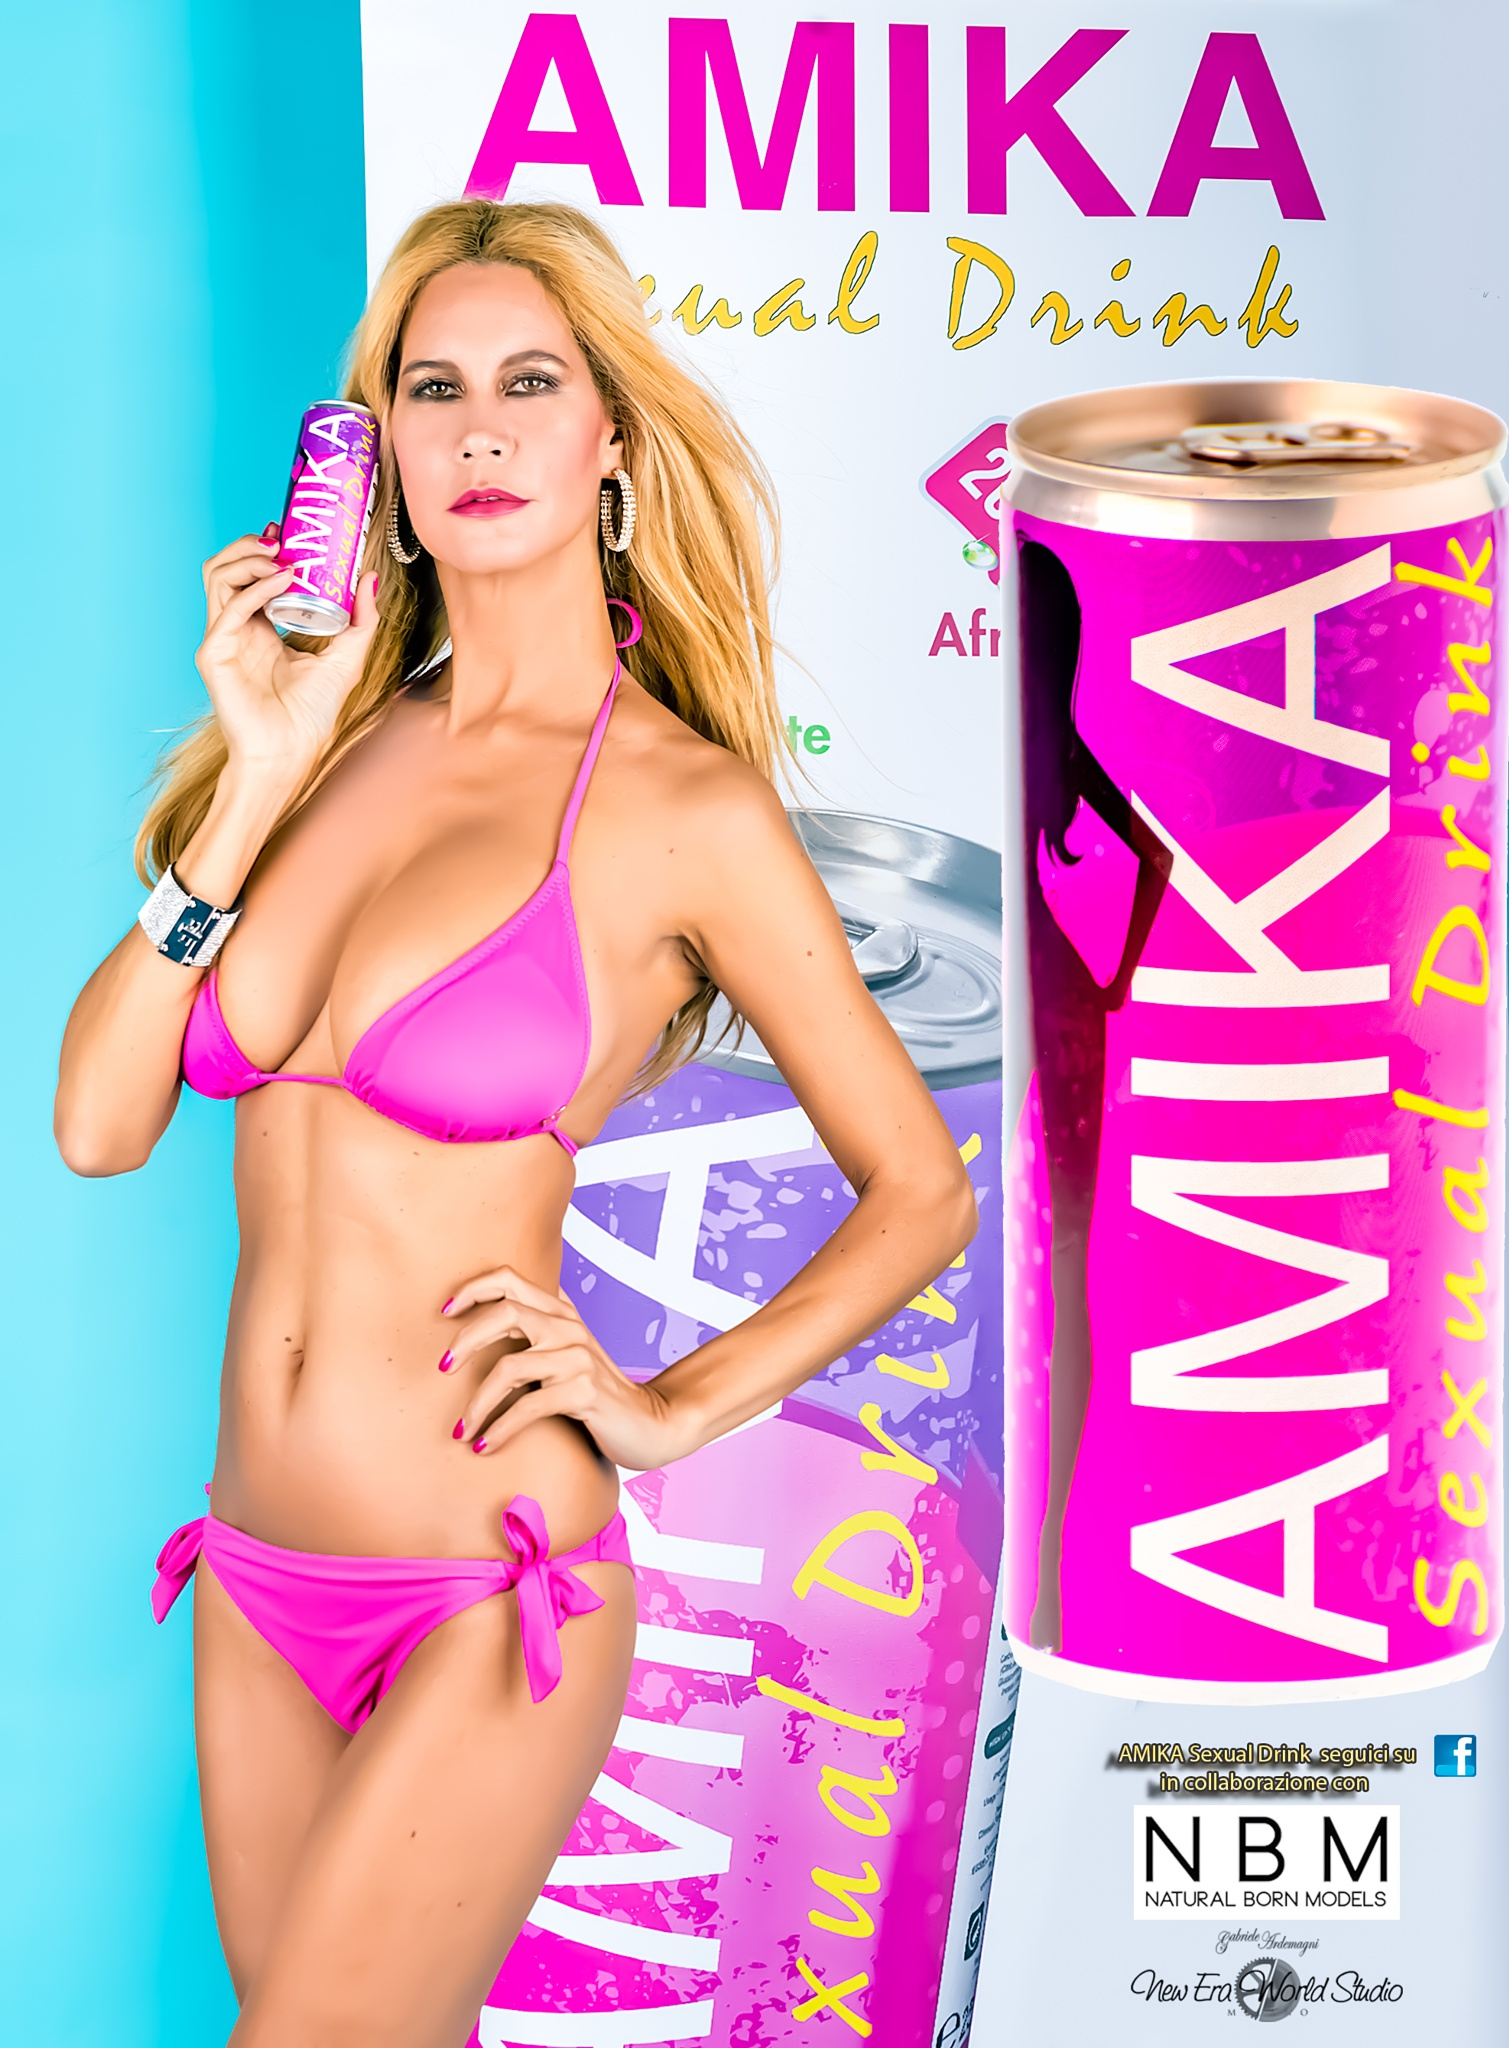 Alicia for Amika Sexual Drink 1 by gabrieleardemagnifoto